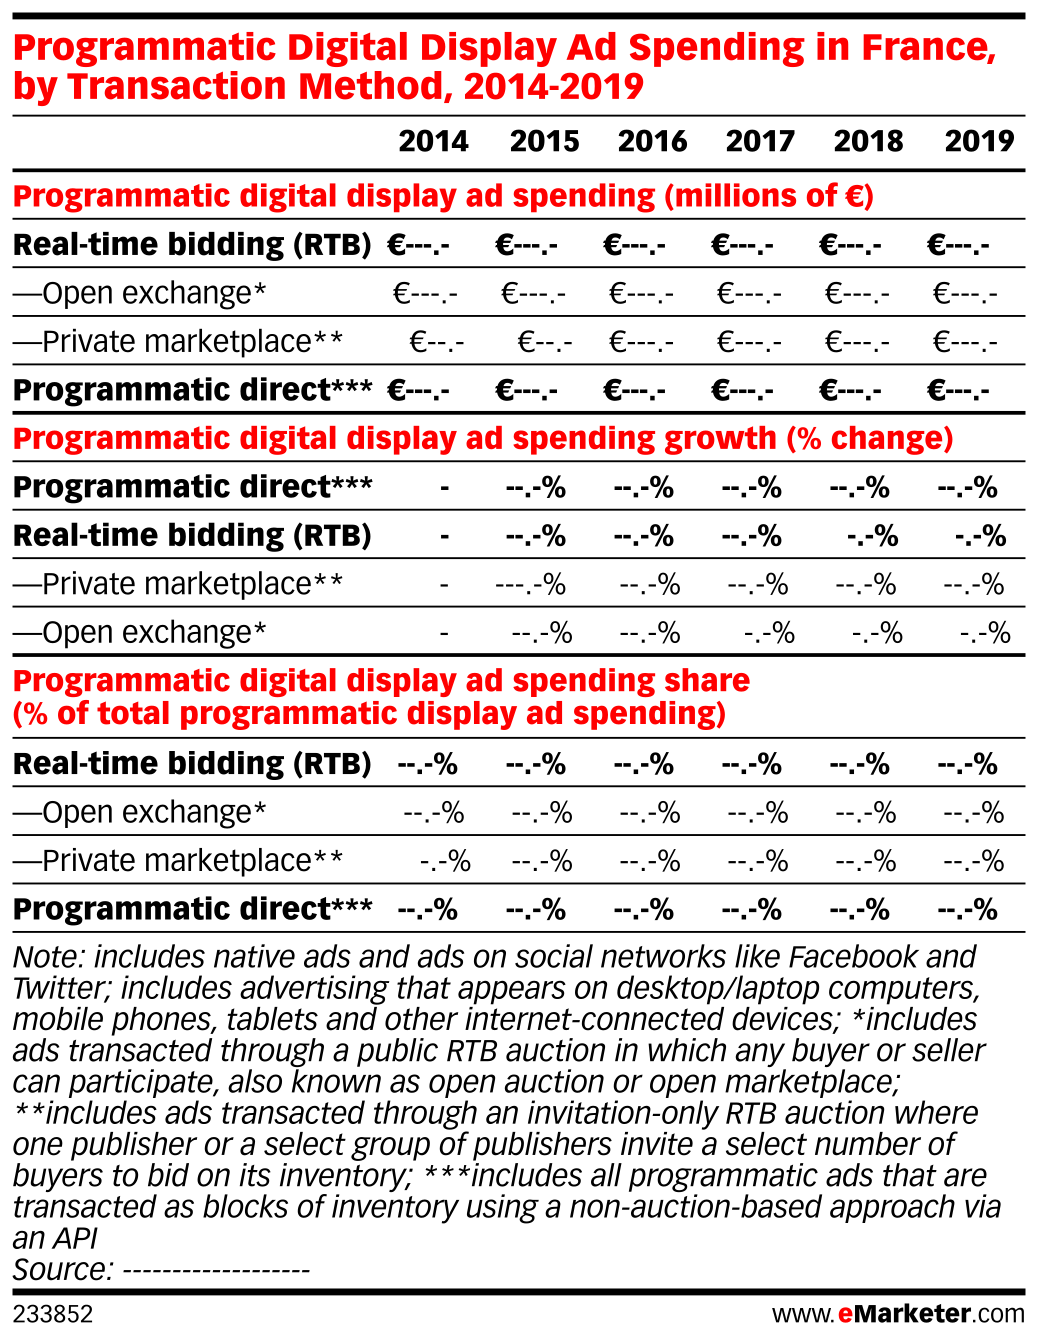 Programmatic Digital Display Ad Spending in France, by Transaction Method, 2014-2019